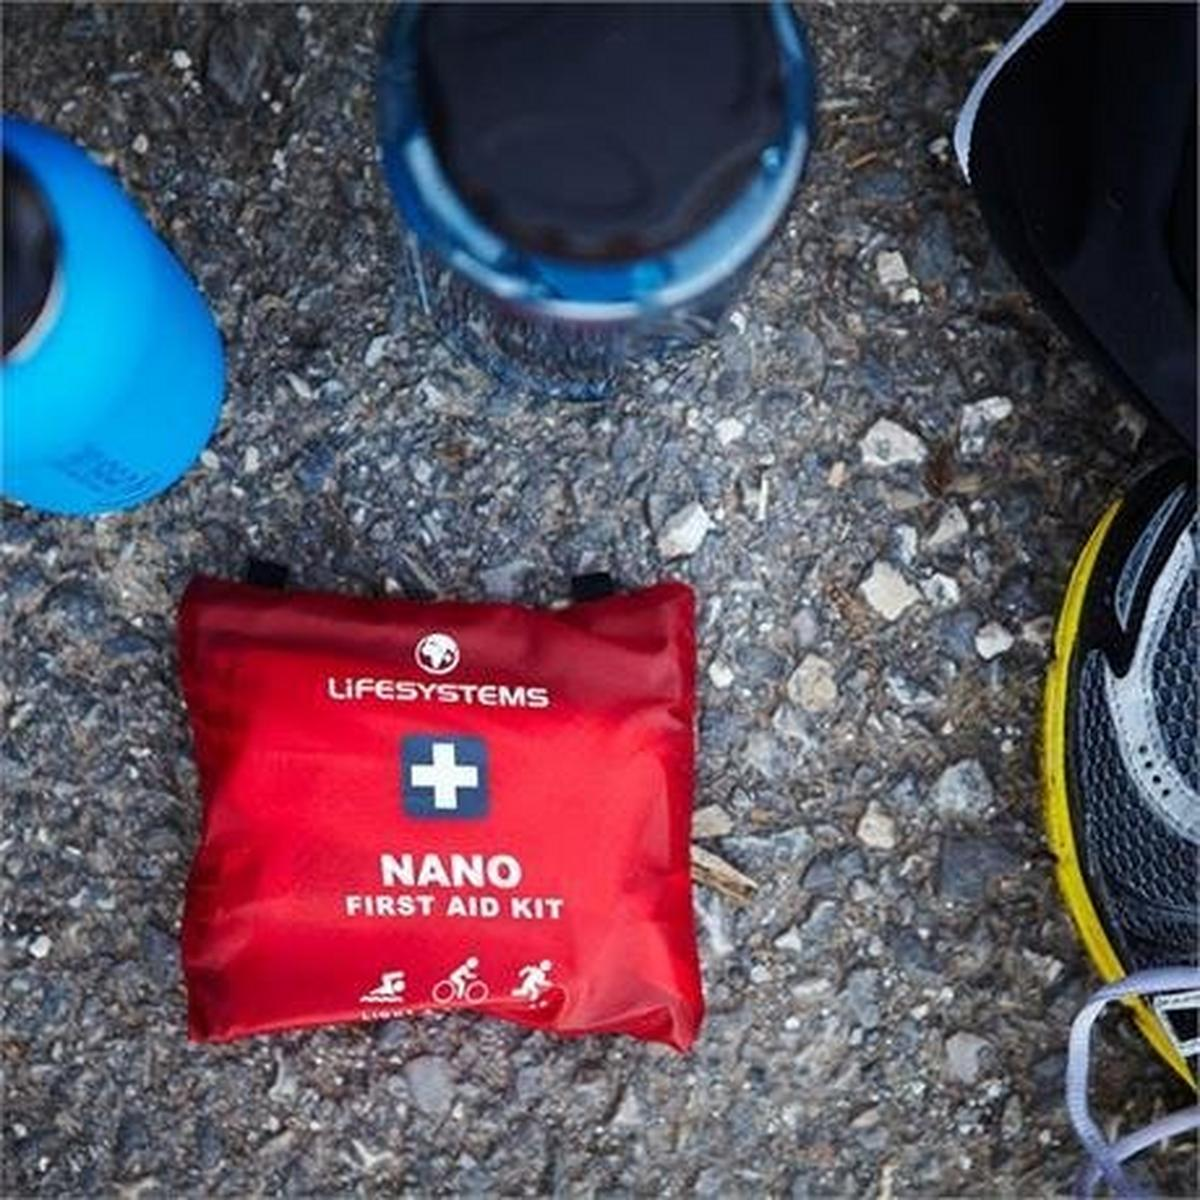 Lifesystems First Aid Kit: Light and Dry Nano